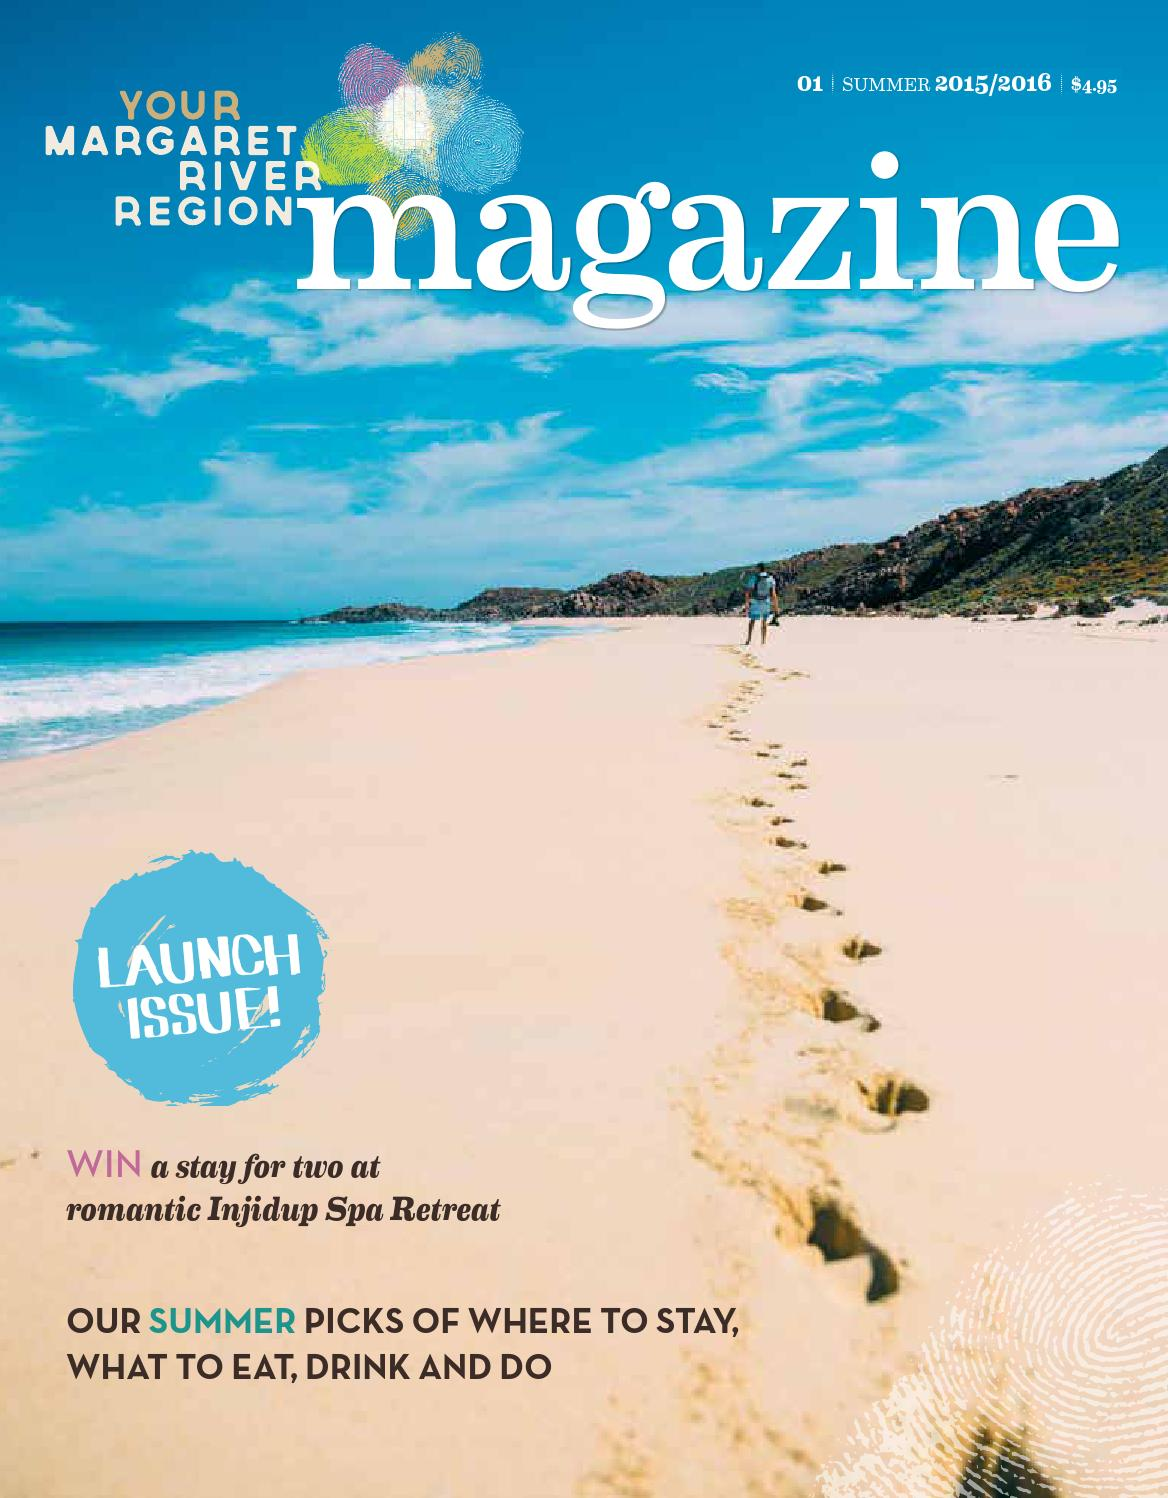 Your Margaret River Region Magazine - Summer 2015 16 by Premium Publishers  - issuu f16ee7302